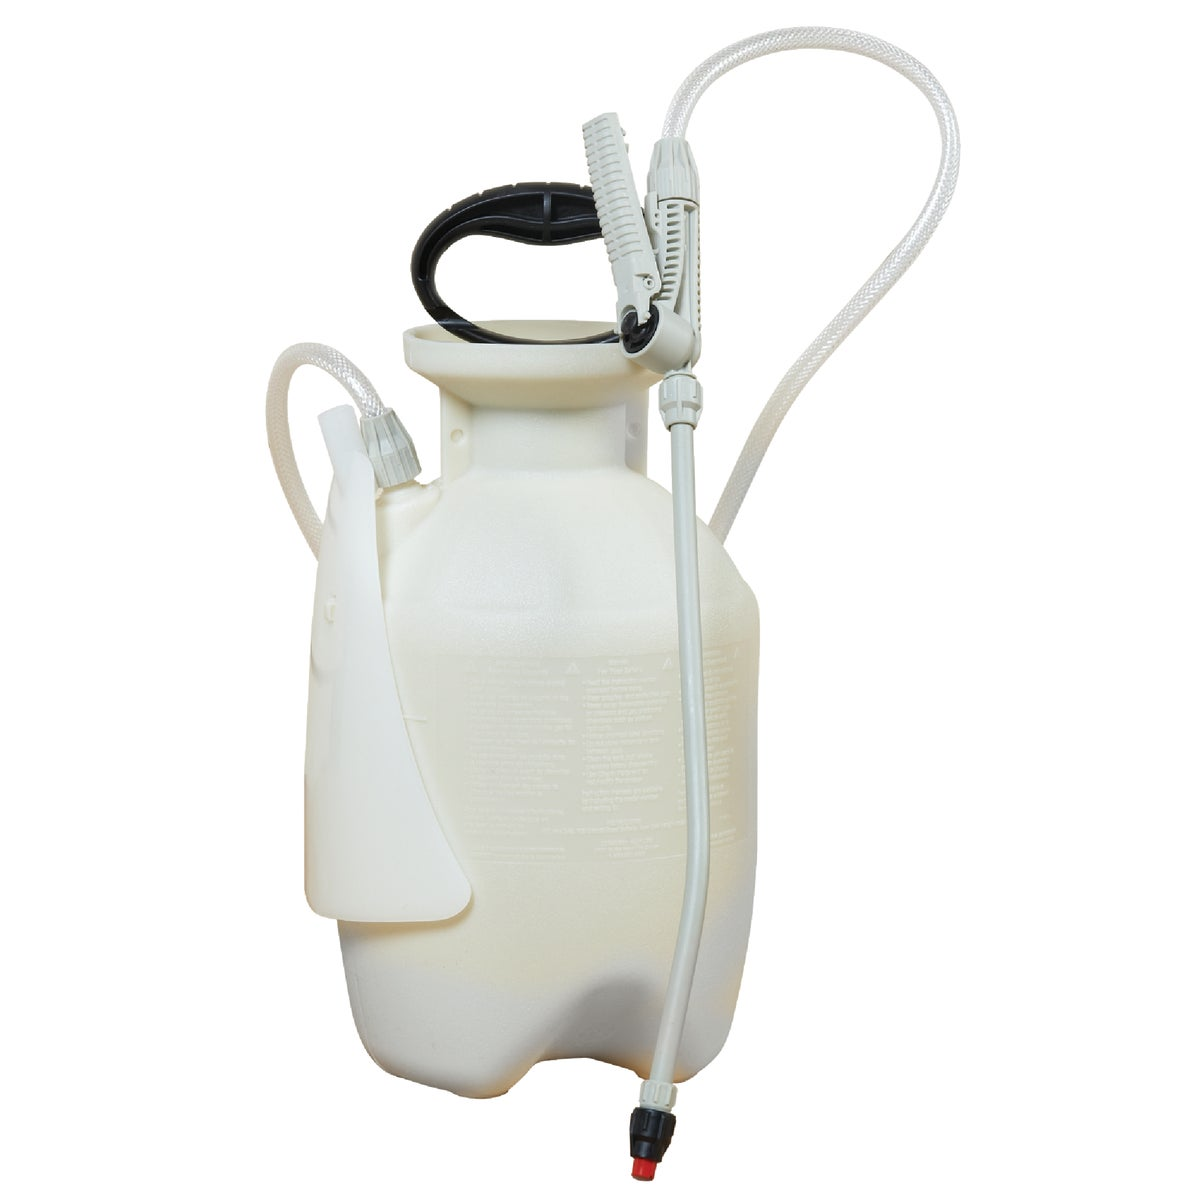 1GAL DECK SPRAYER - 25012 by Chapin Mfg